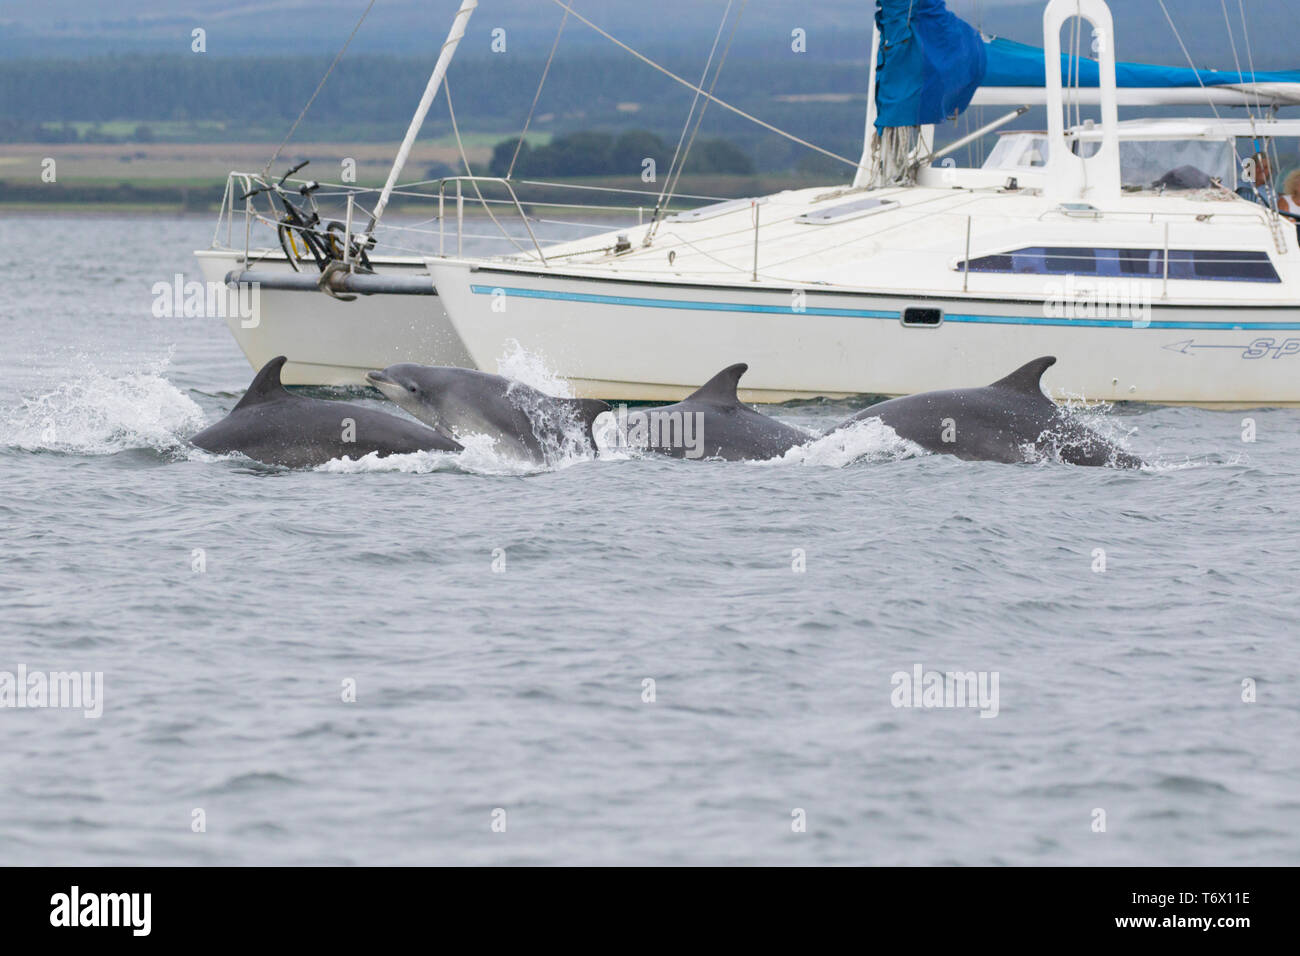 A pod of bottlenose dolphins (tursiops truncatus) surfacing next to a catamaran in the Moray Firth, Scotland, UK - Stock Image